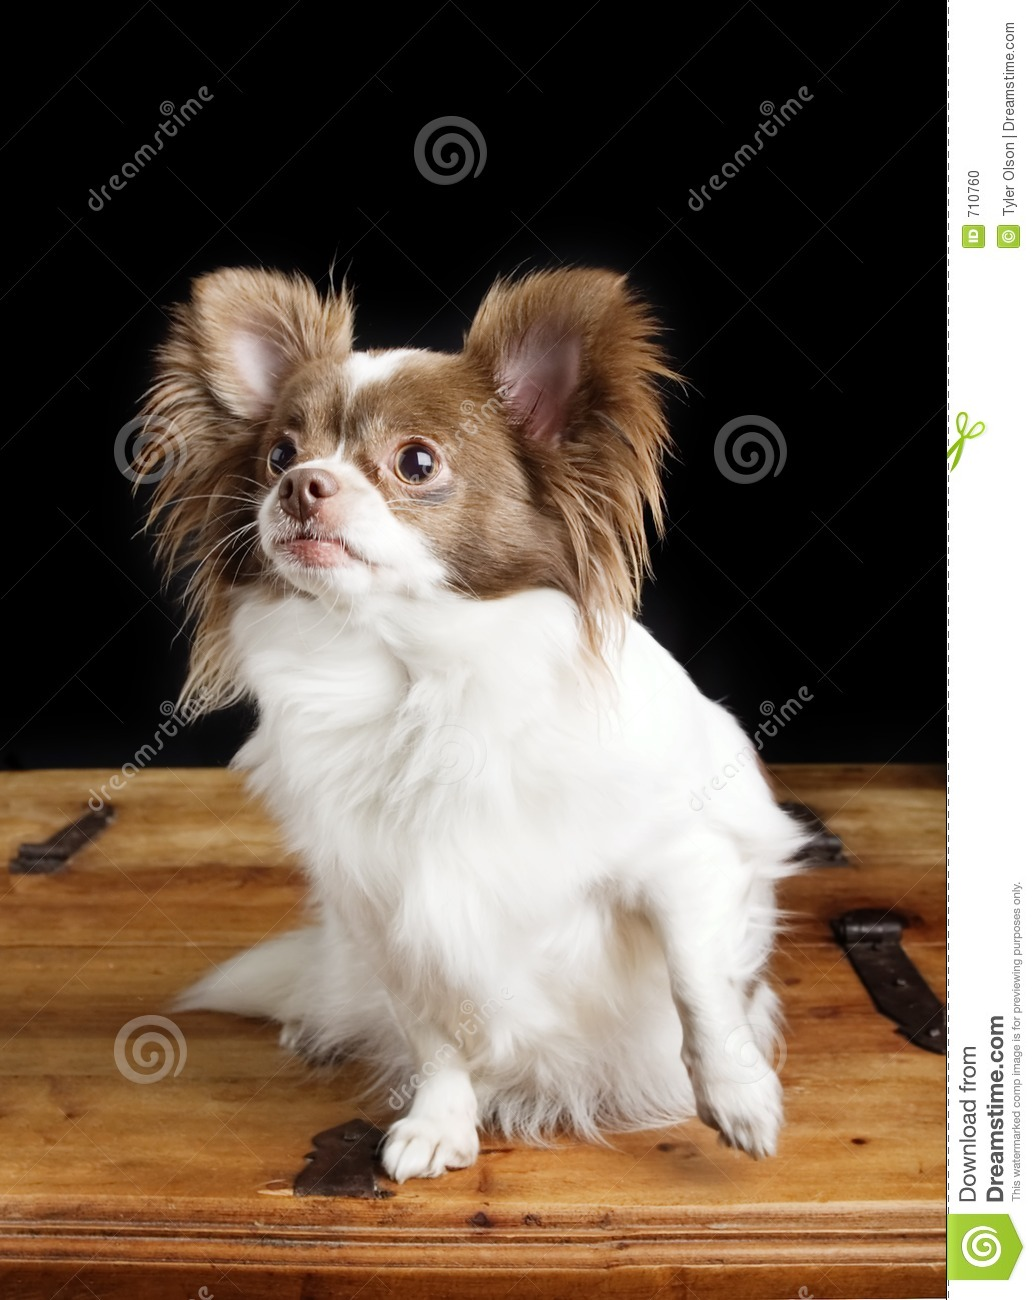 Chiwawa Stock Photo - Image: 710760